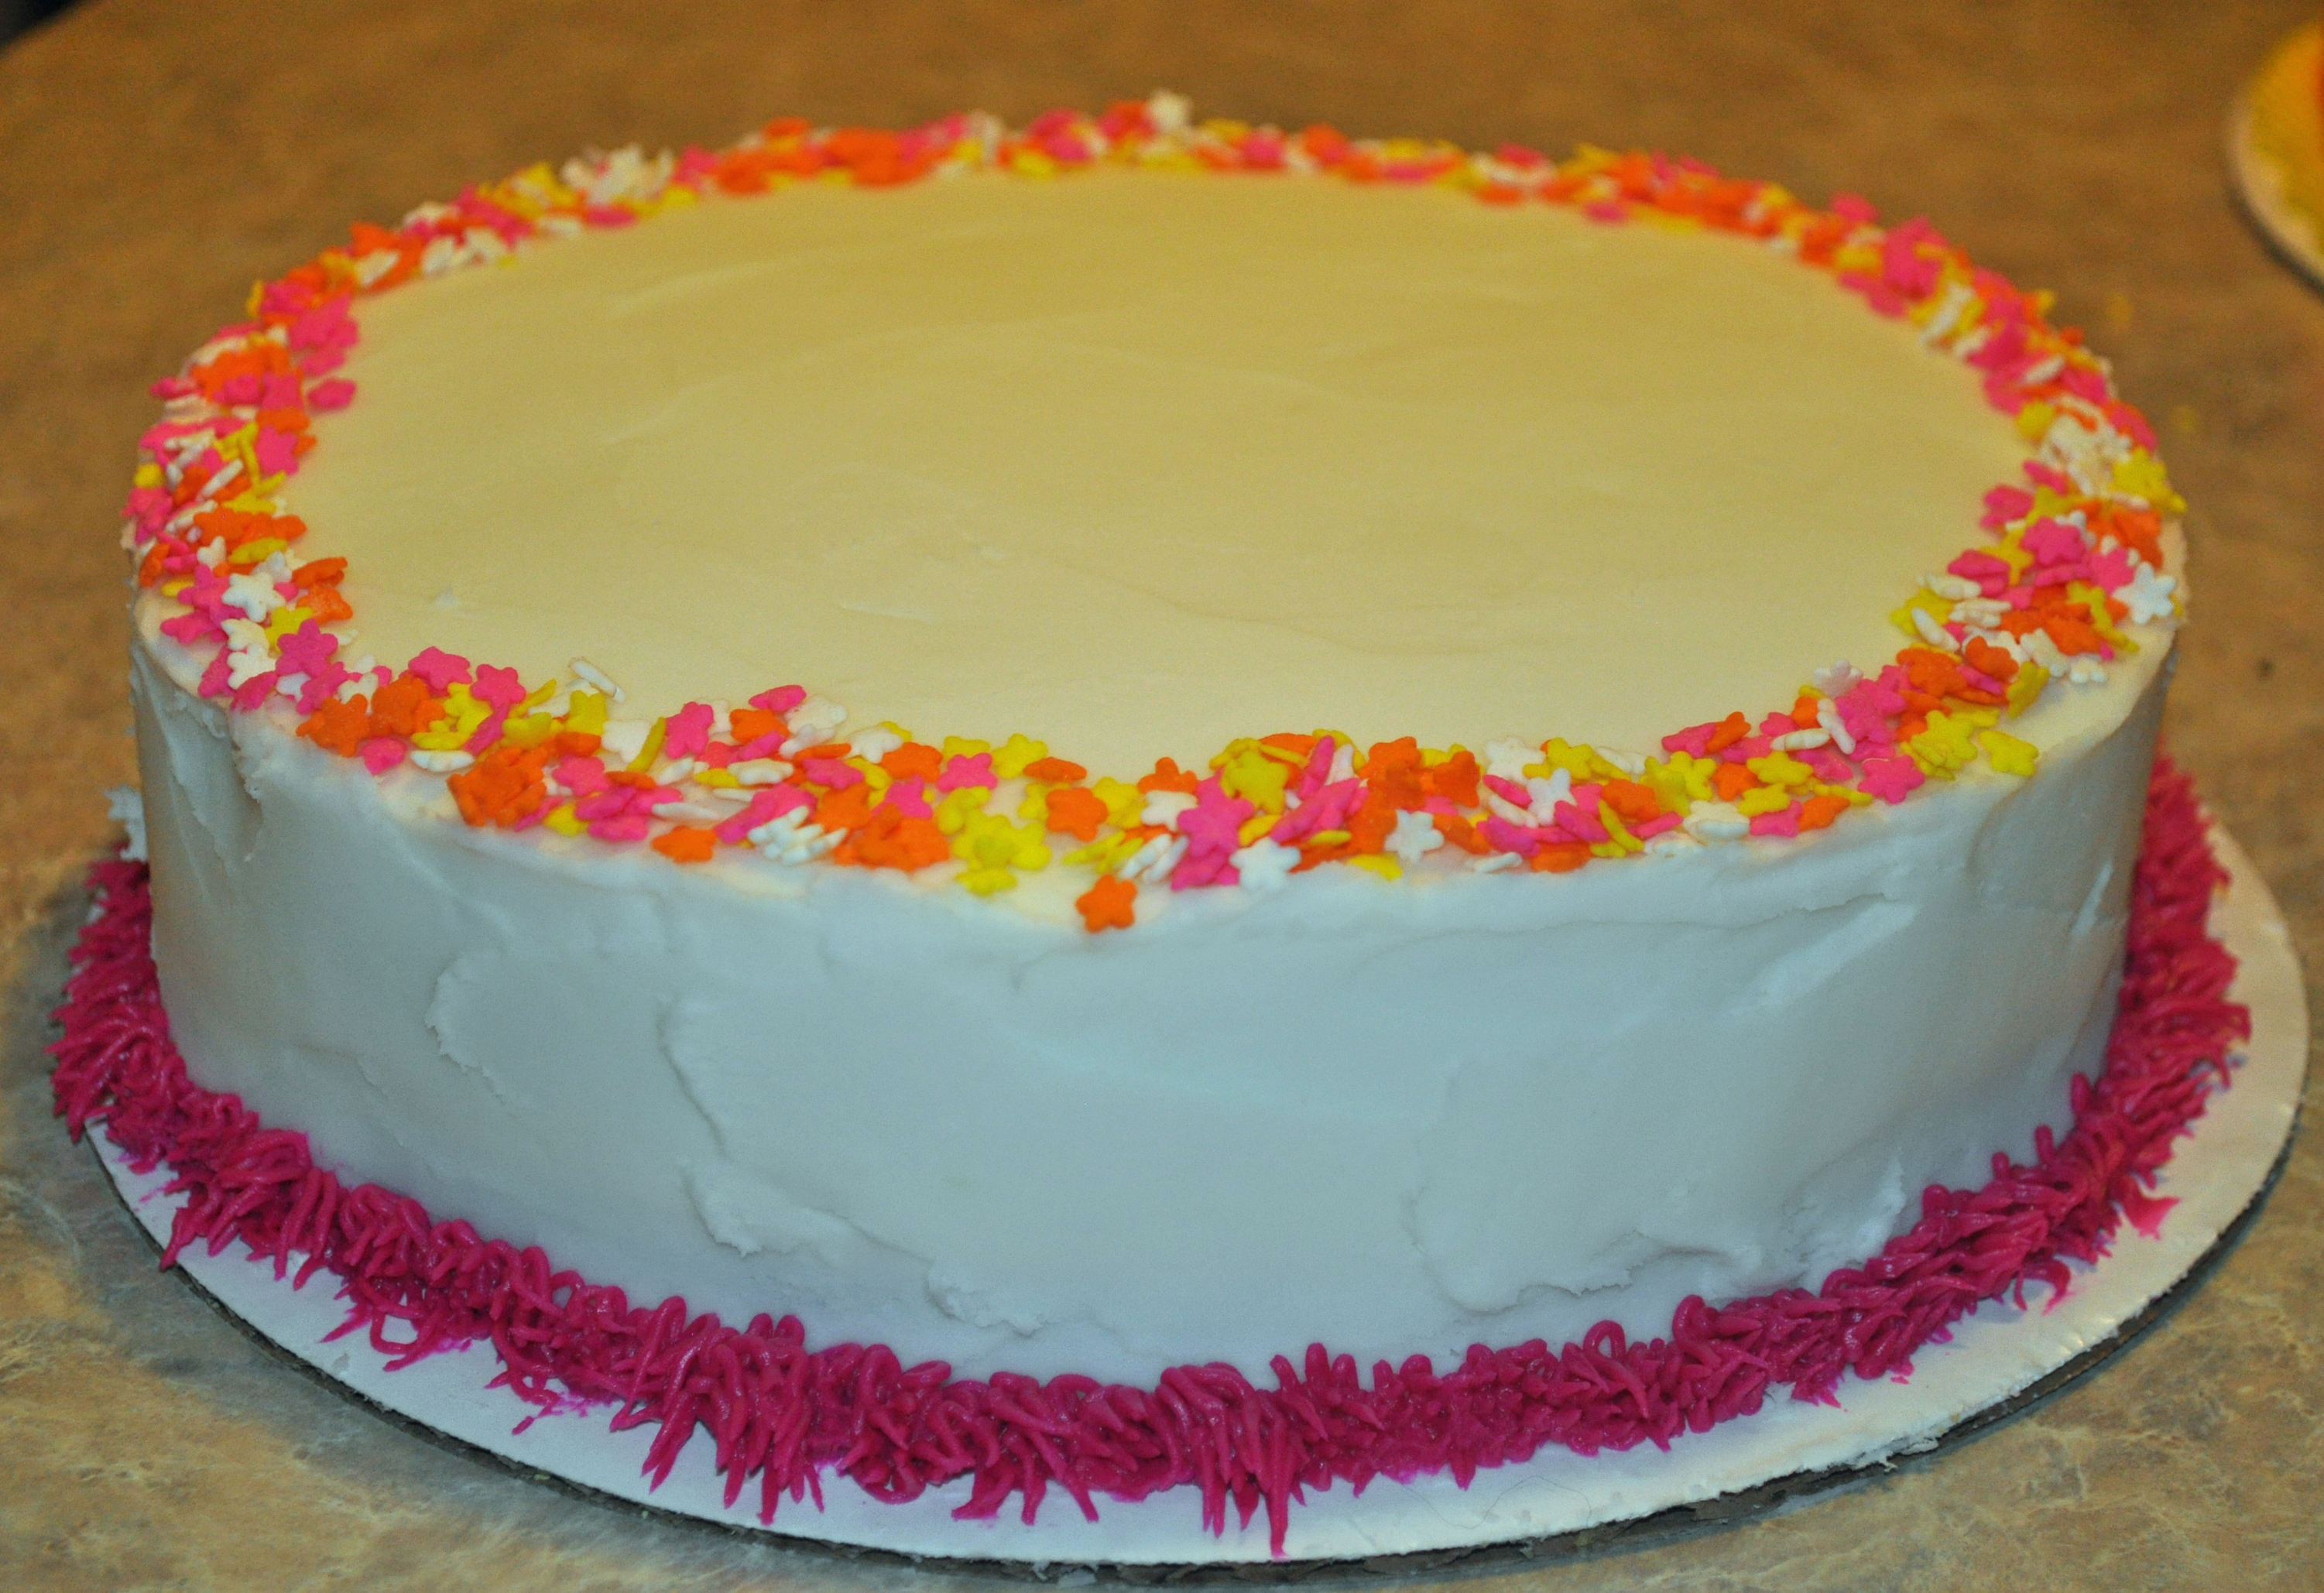 Cake Boss Decorating A Cake : Tips For Cake Decorating #CakeBossParty